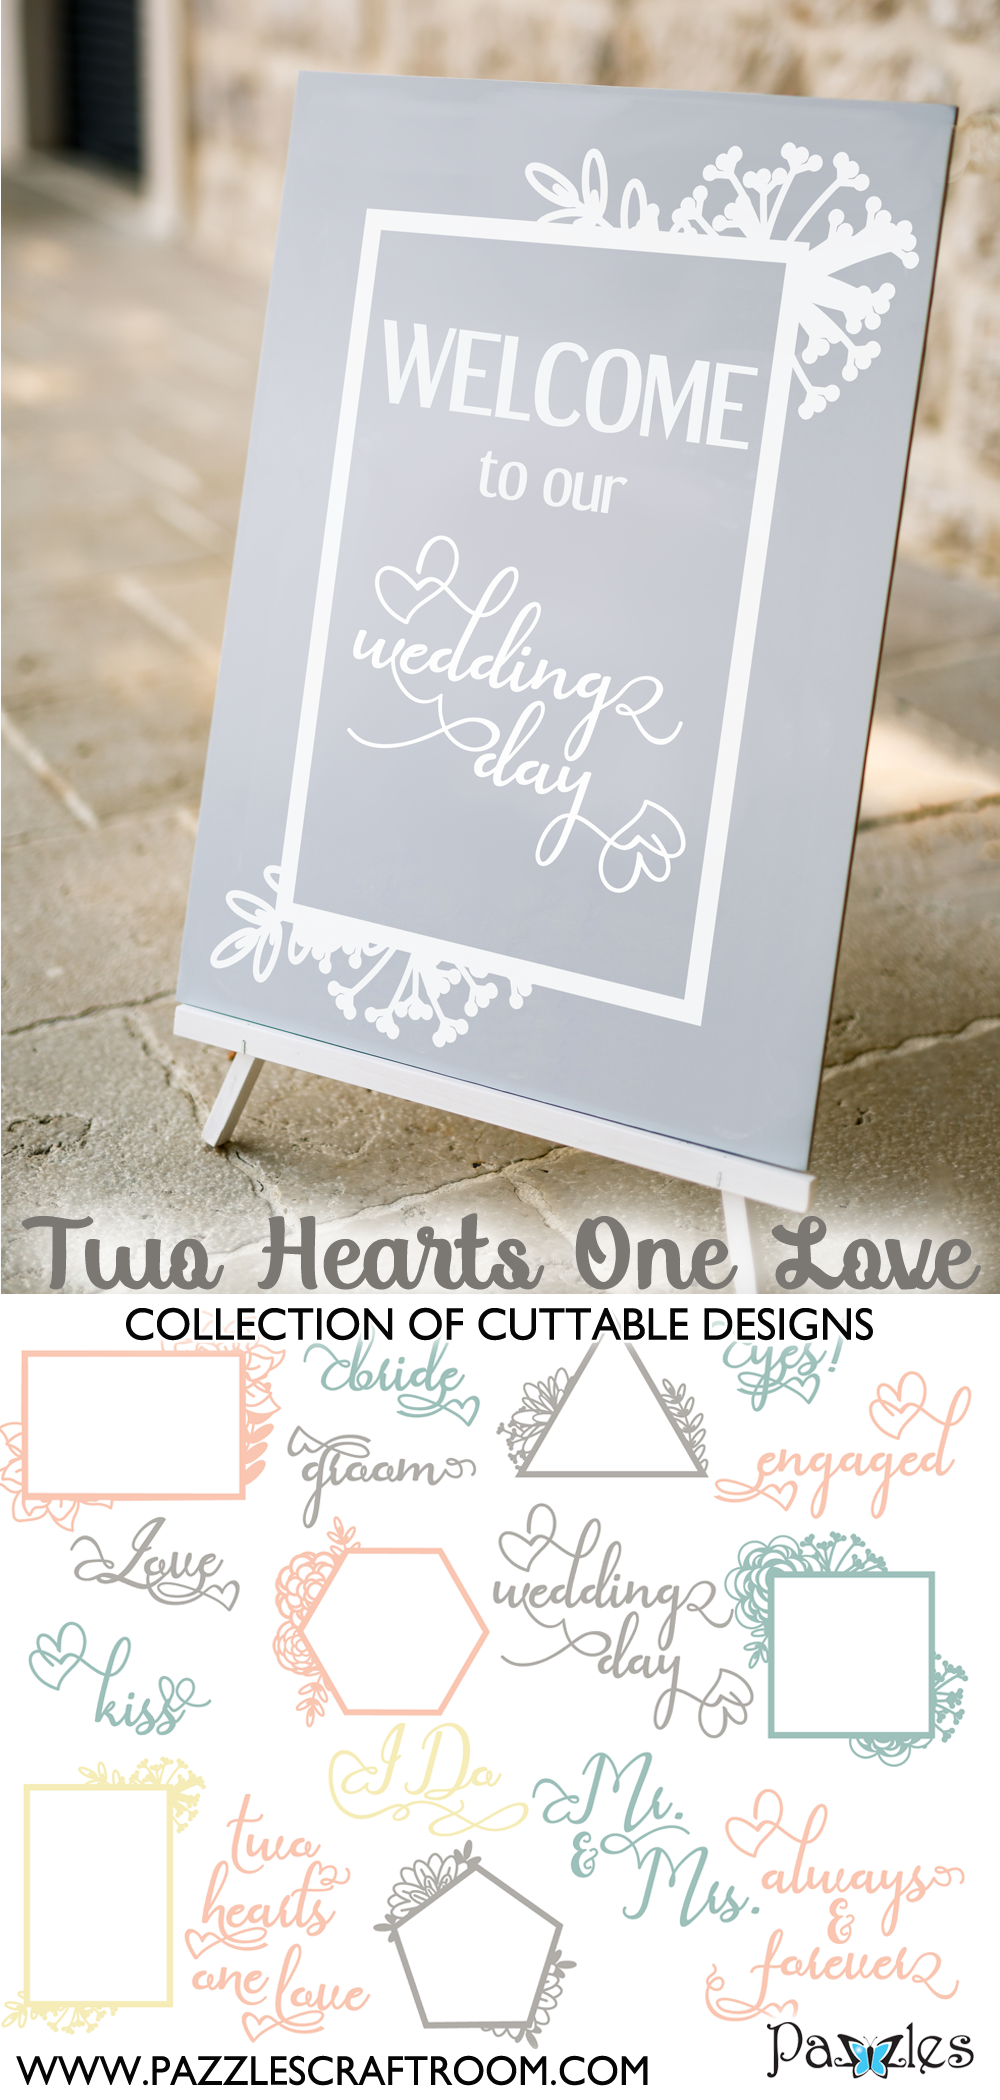 Pazzles DIY Two Hearts One Love Collection 16 cuttable files in SVG, AI, and WPC. Instant SVG download compatible with all major electronic cutters including Pazzles Inspiration, Cricut, and Silhouette Cameo. Design by Amanda Vander Woude.